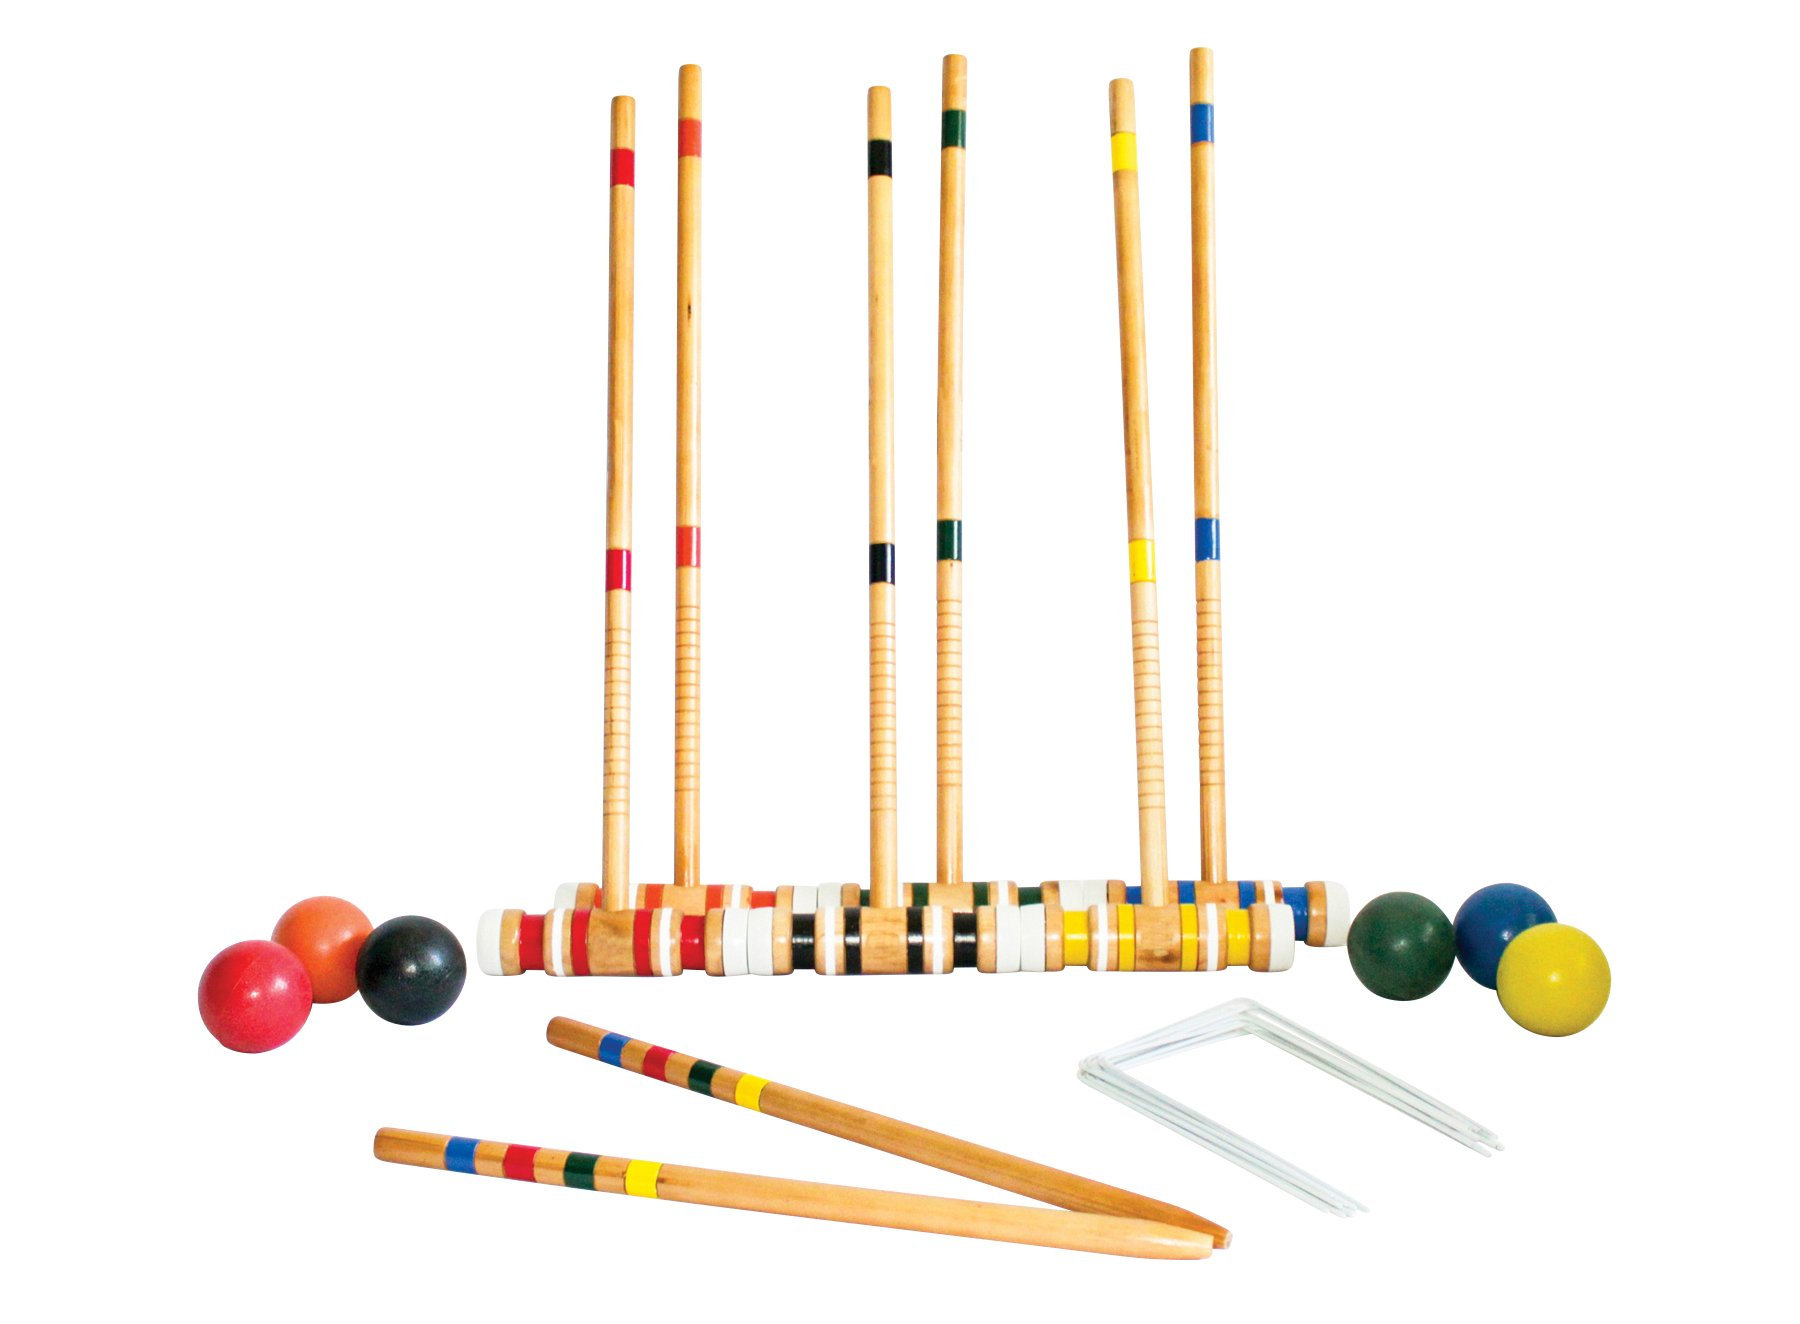 Triumph 6-Player Beginner Backyard Croquet Set Includes 6 Wood Mallets, 6 Balls, and Carry Bag by Triumph Sports